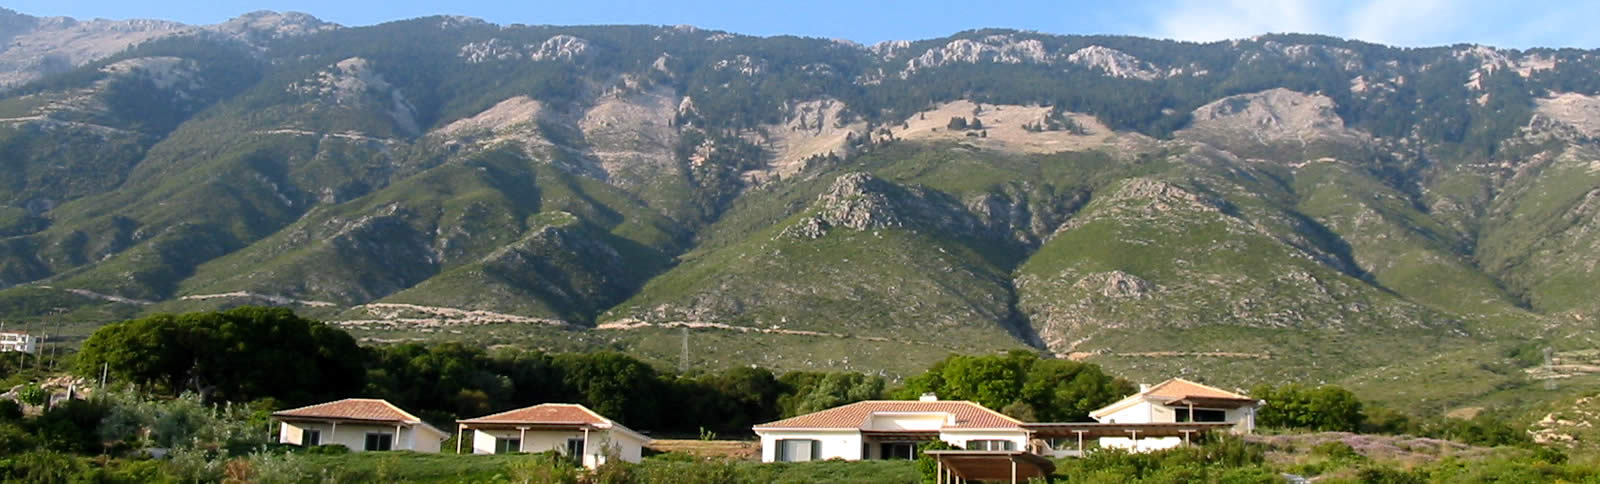 Villa Lefka with Mount Ainos in the background